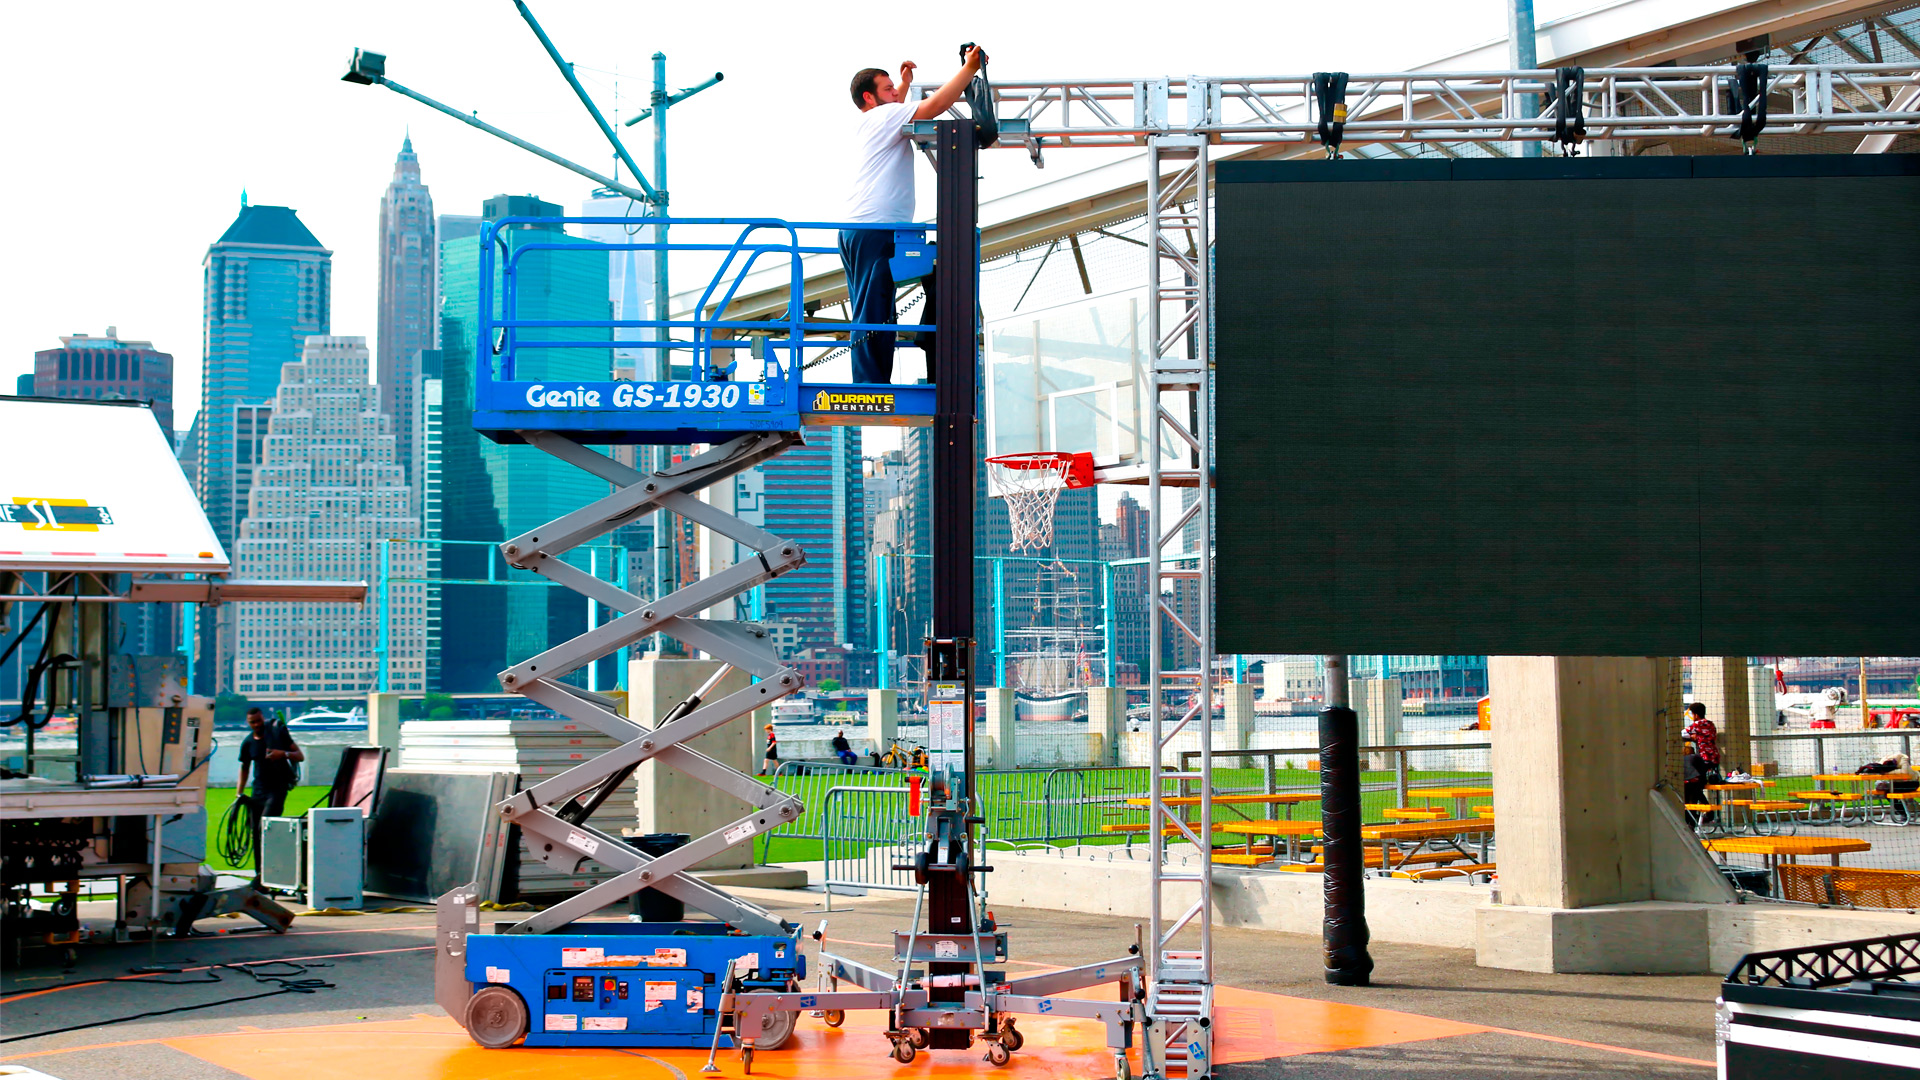 Guy in Genie Scissor Lift at Brooklyn Bridge Park Freedom Tower